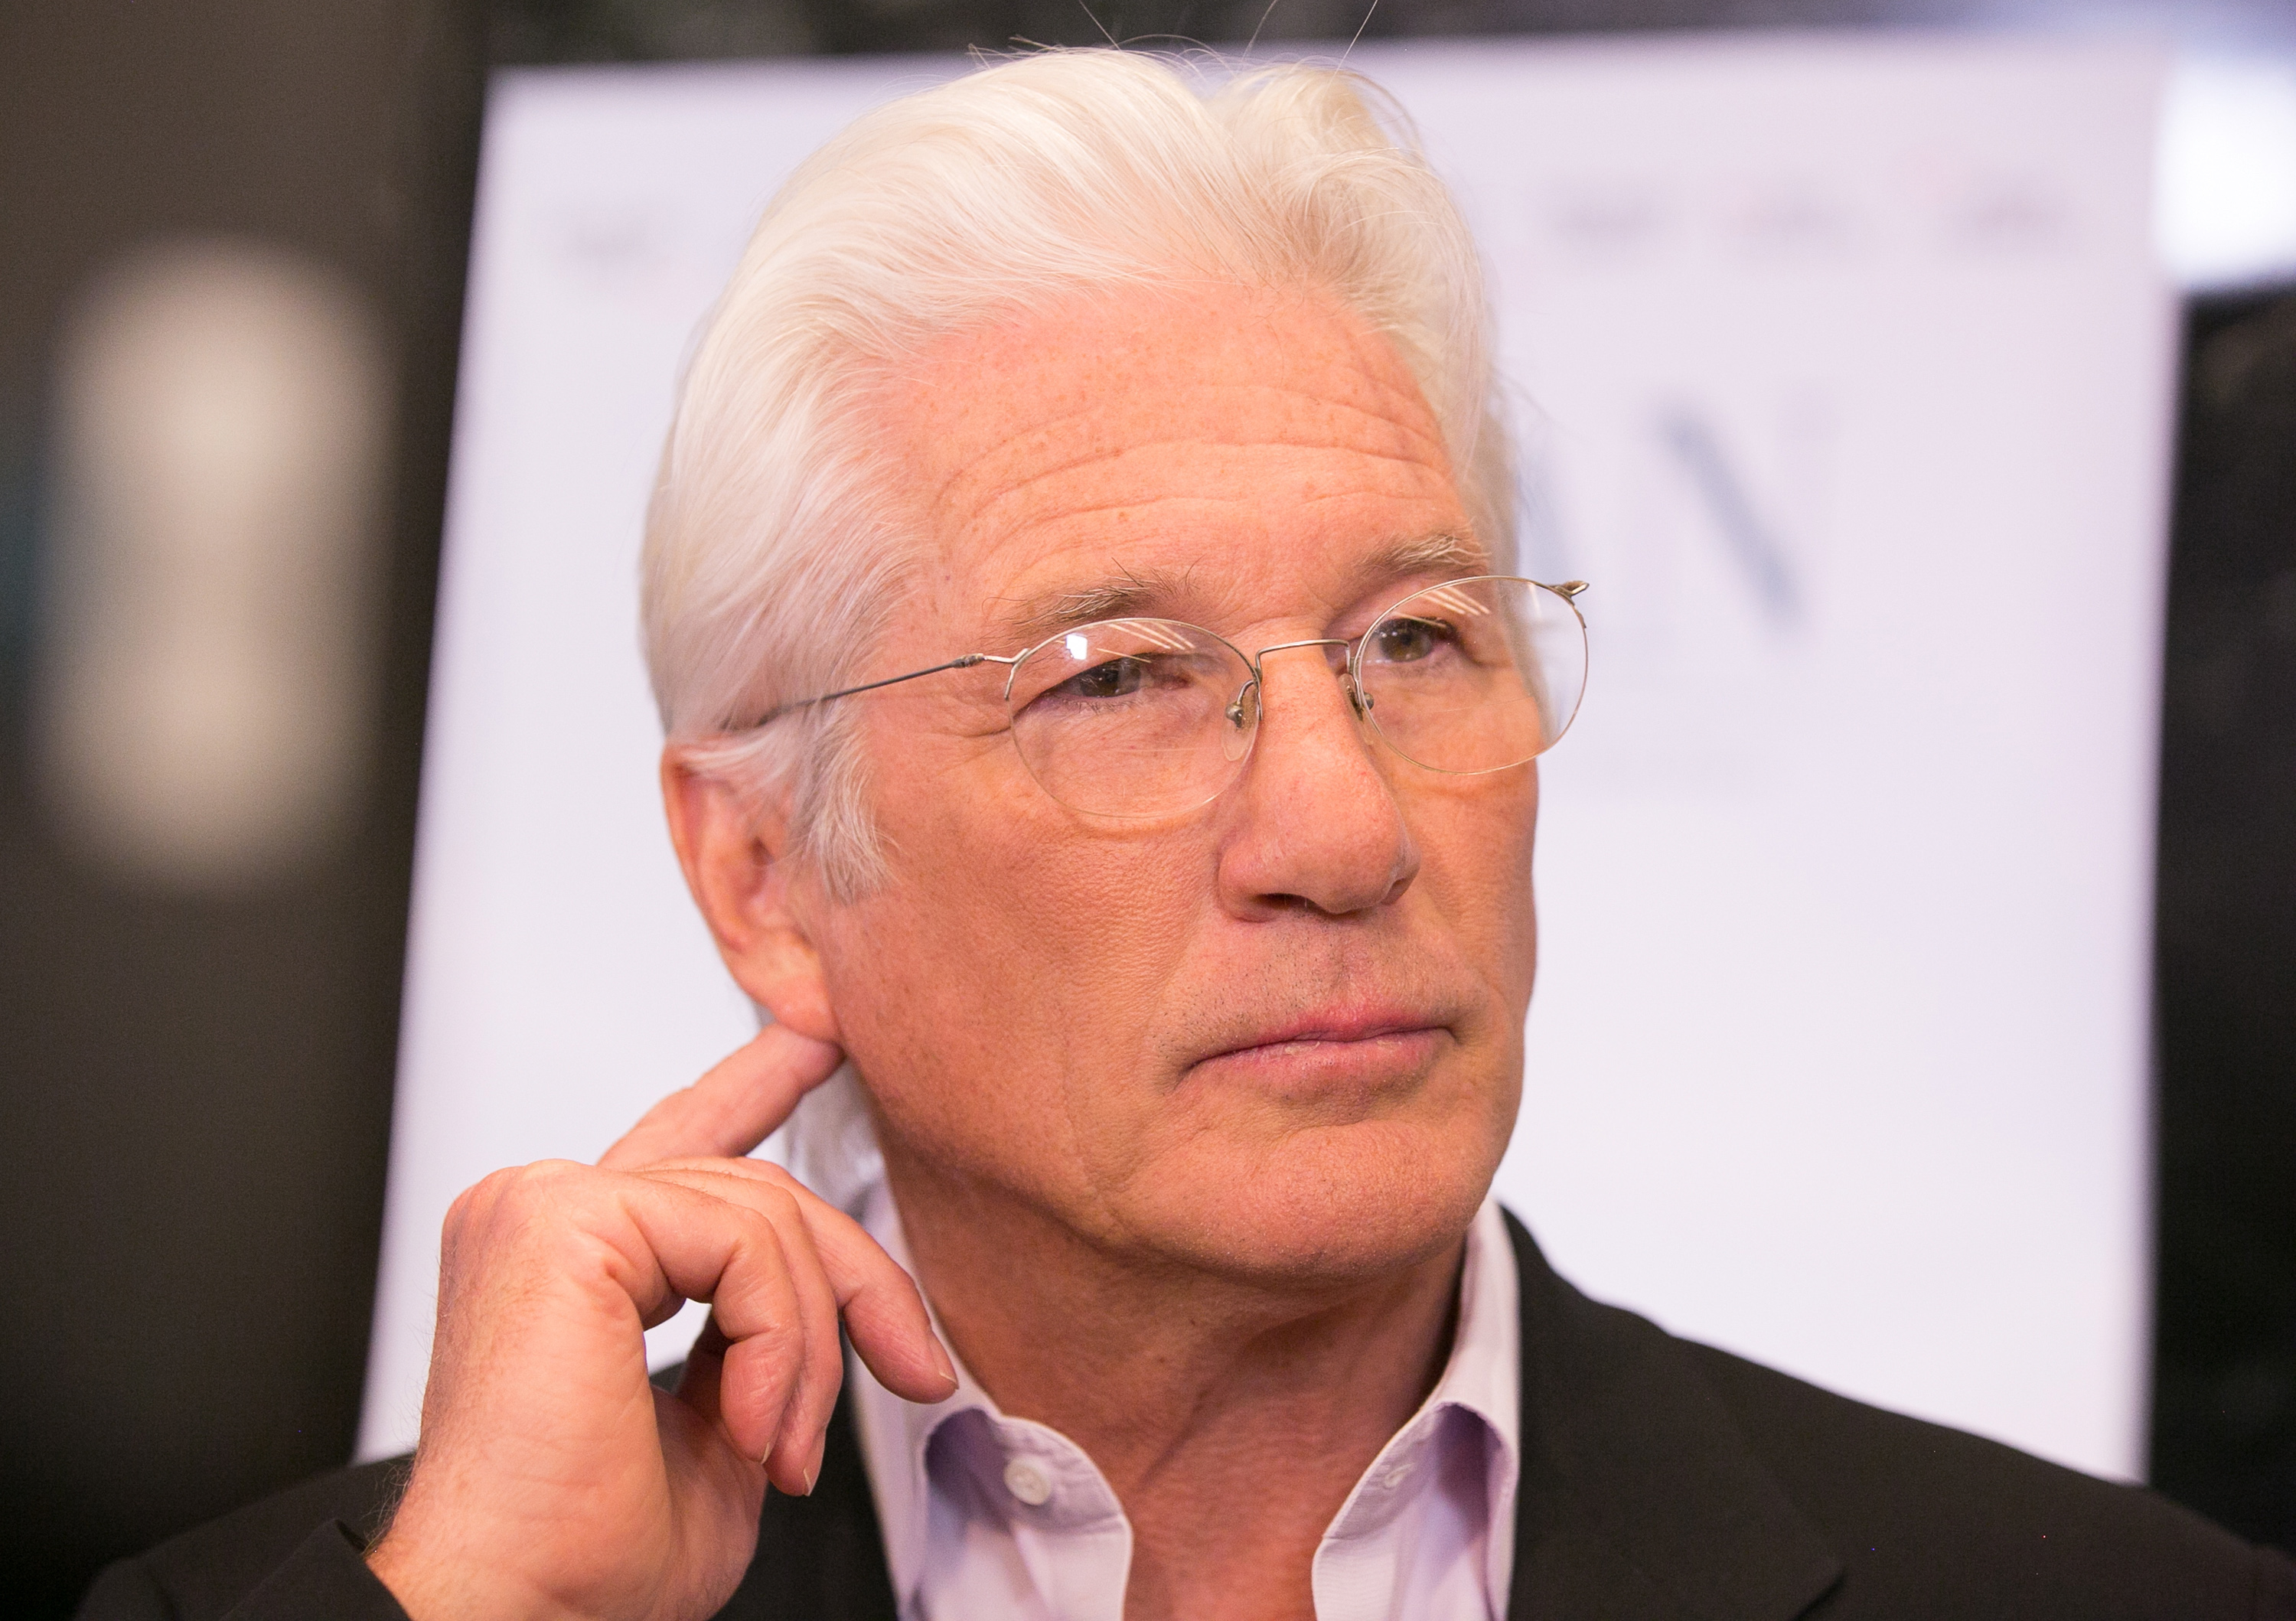 Richard Gere arrives for the premiere of Sony Pictures Classics'  Norman  at Linwood Dunn Theater at the Pickford Center for Motion Study on April 5, 2017 in Hollywood, California.